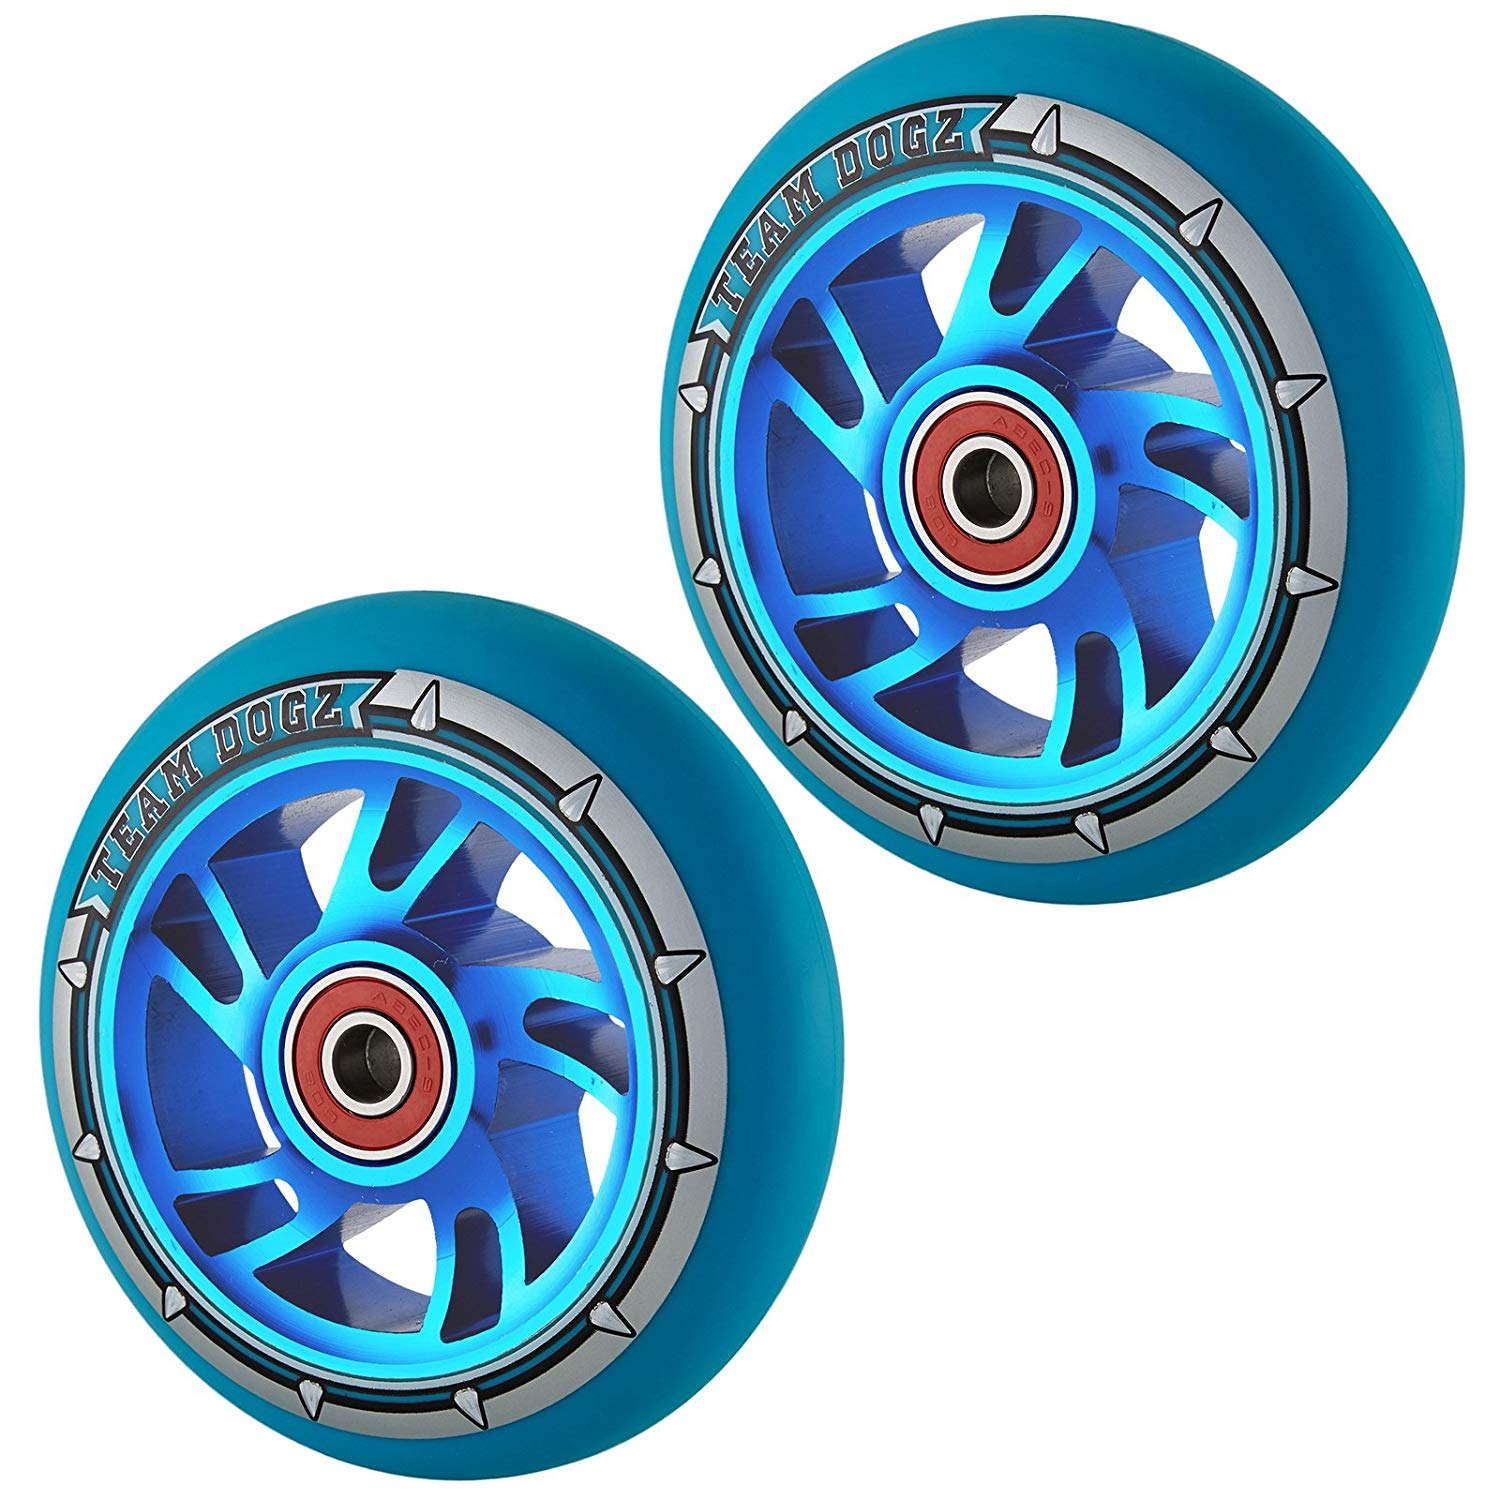 Team Dogz 100mm Swirl Scooter Wheels - Blue Cores with Blue Tyres (Pair)